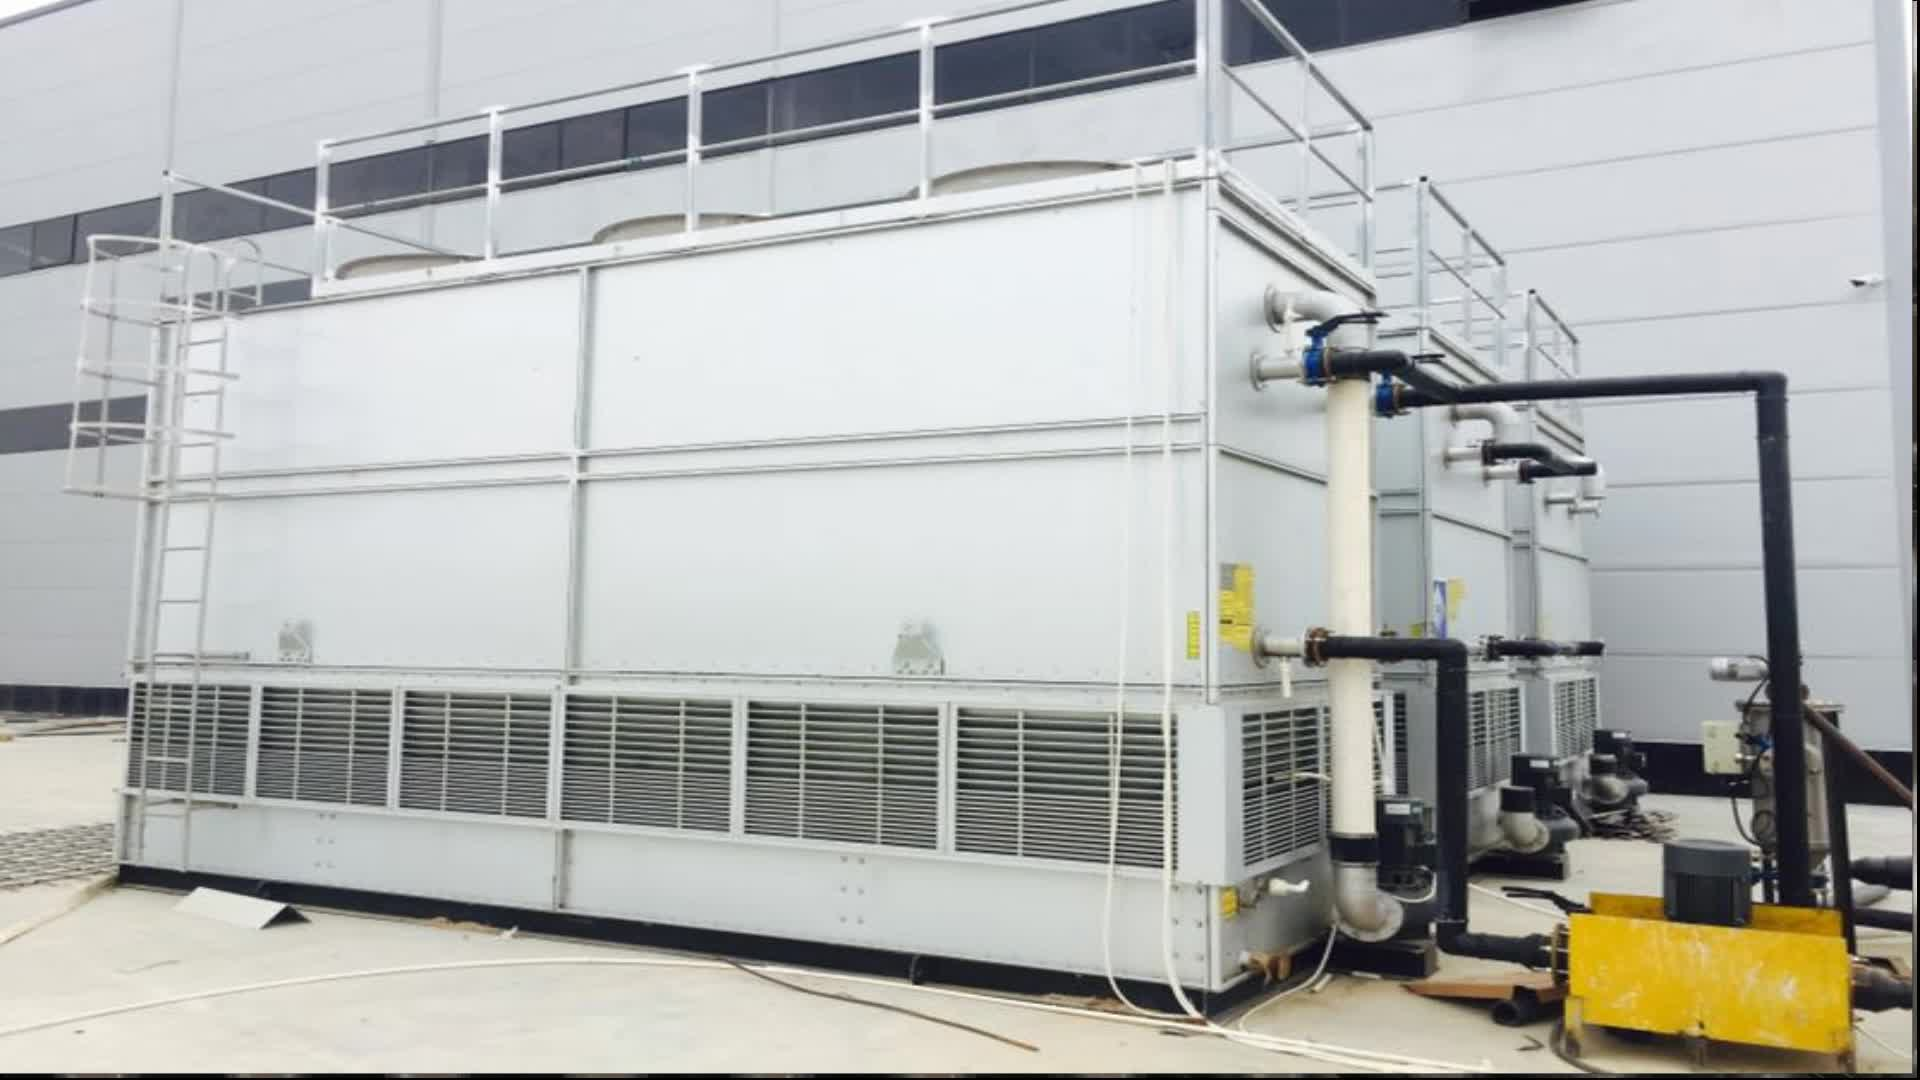 Counter flow closed type water cooling tower for low temperature environment